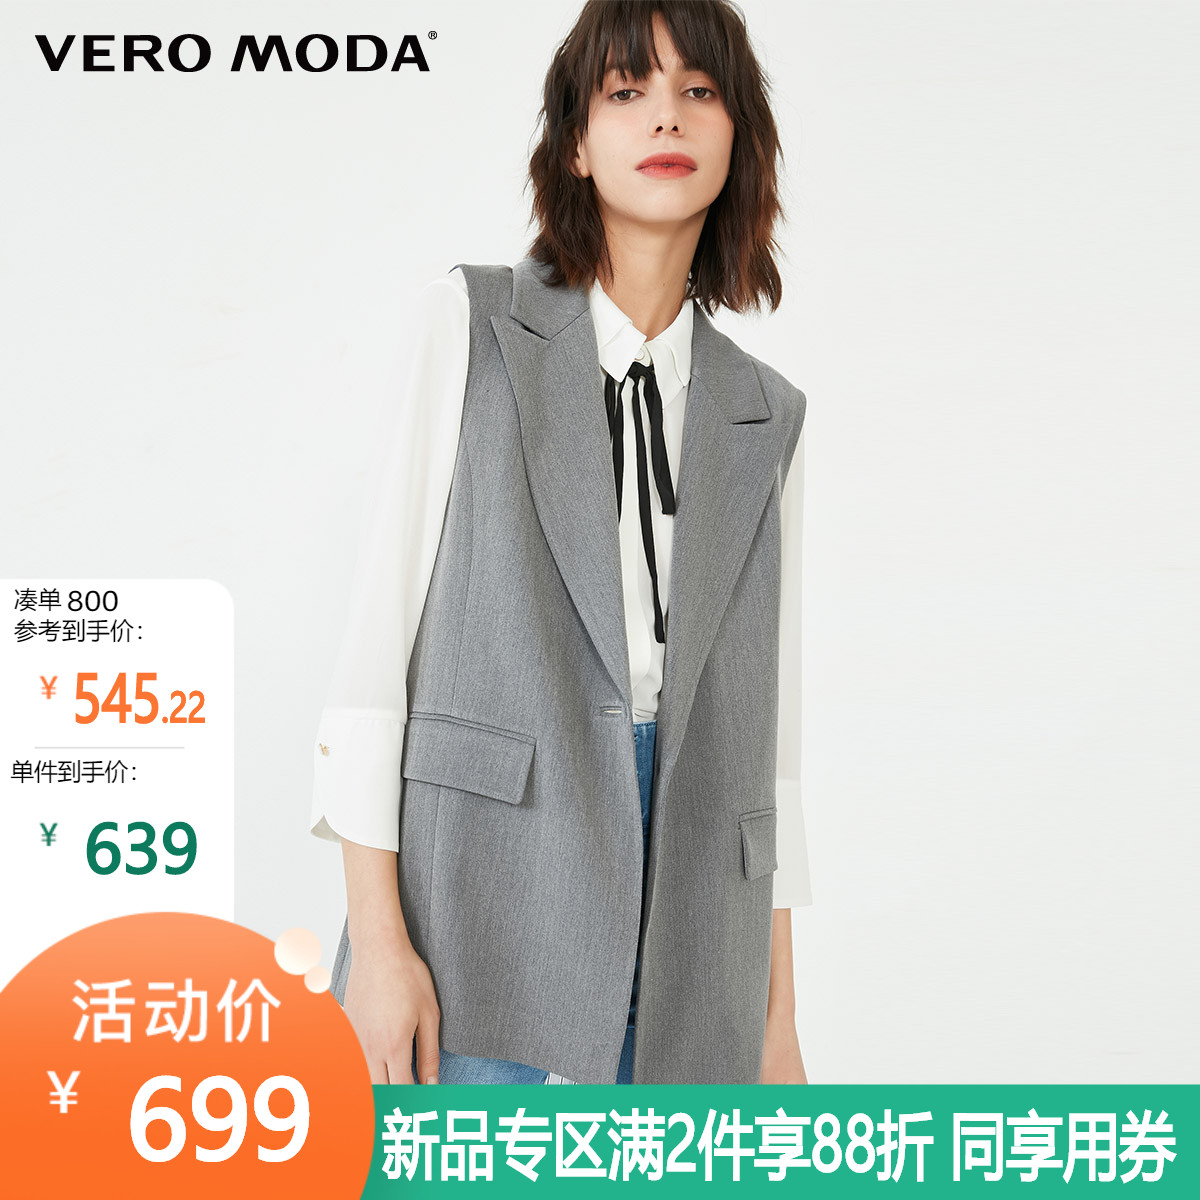 Vero moda2020 spring and summer new vintage ins wind Lapel one button sleeveless vest for women 320134509